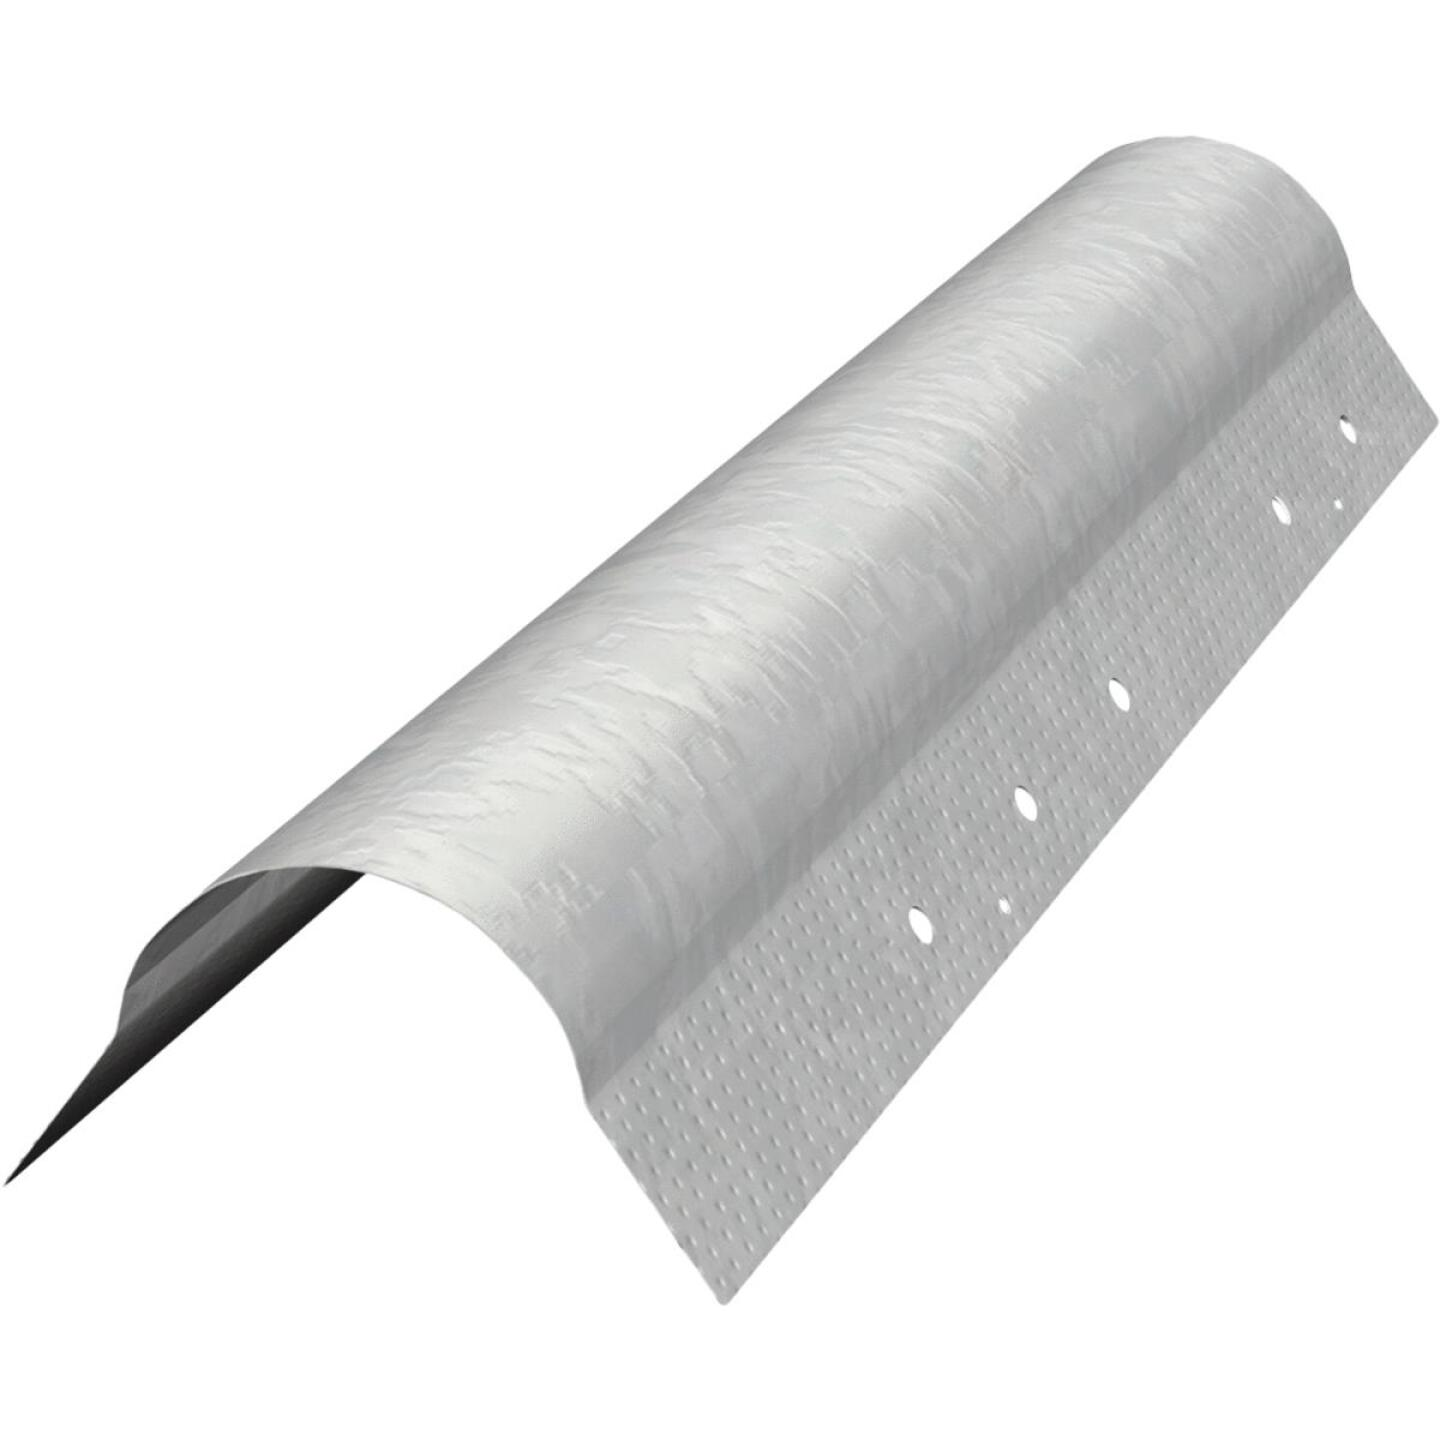 Clarkdietrich 3 4 In X 10 Ft Metal Bullnose Corner Bead Do It Best World S Largest Hardware Store